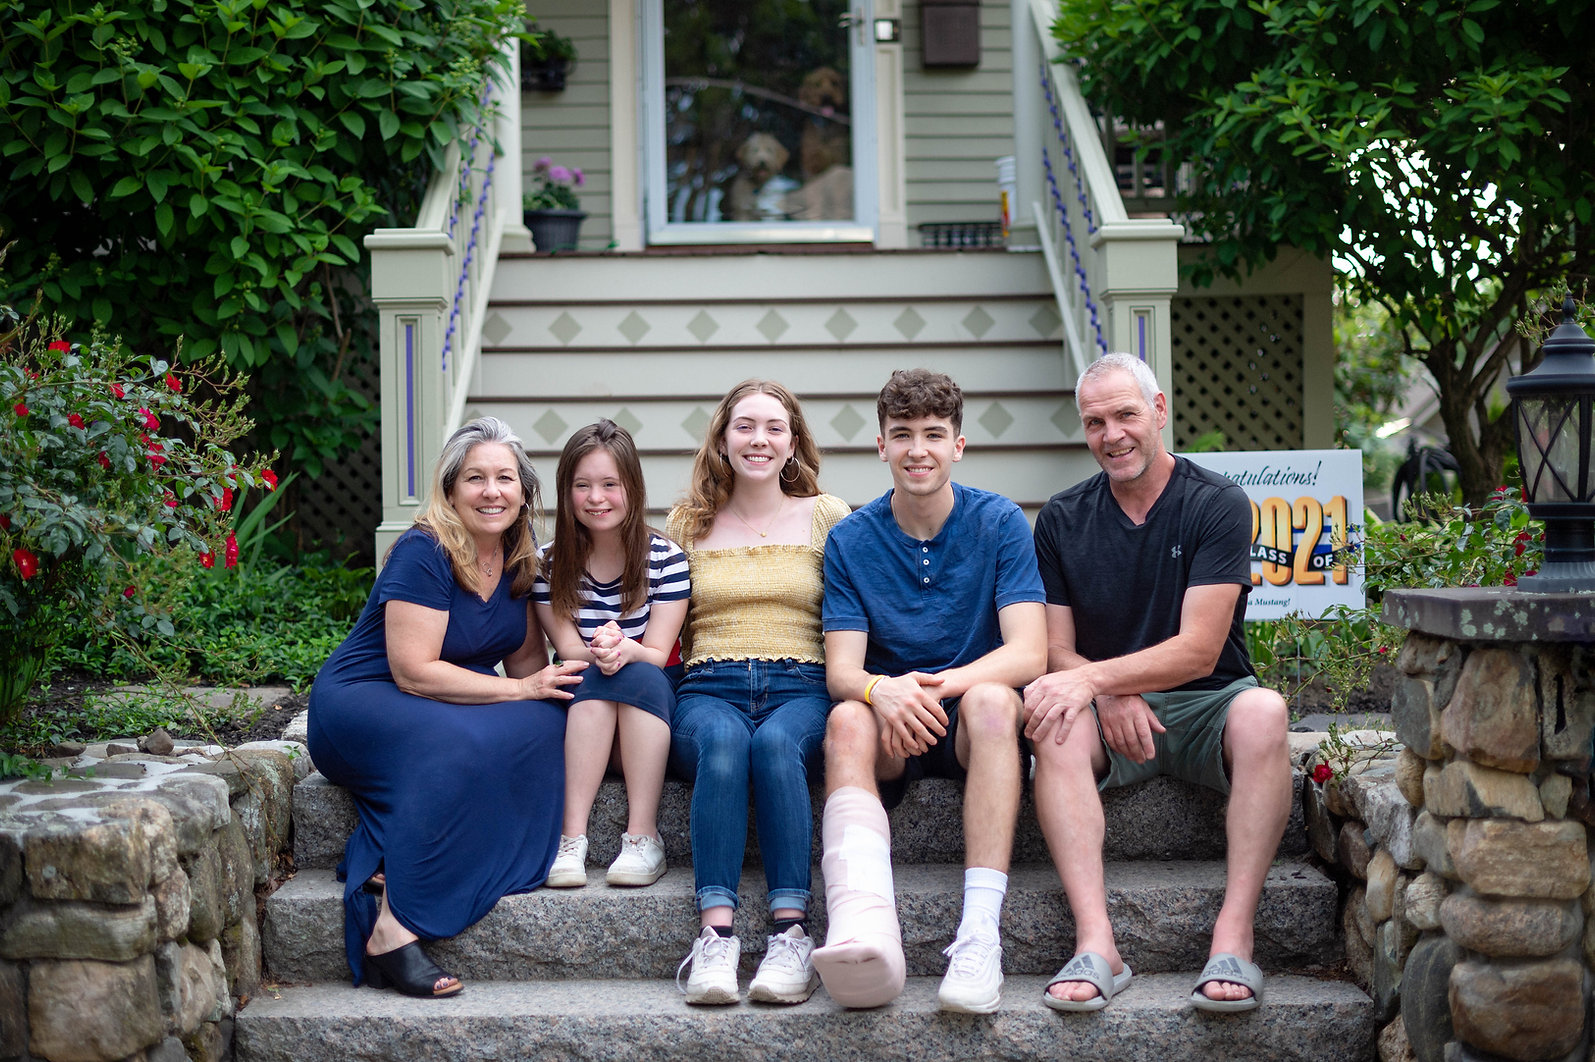 McLaughlin Family front porch w dogs 2021 Bolitho.jpeg